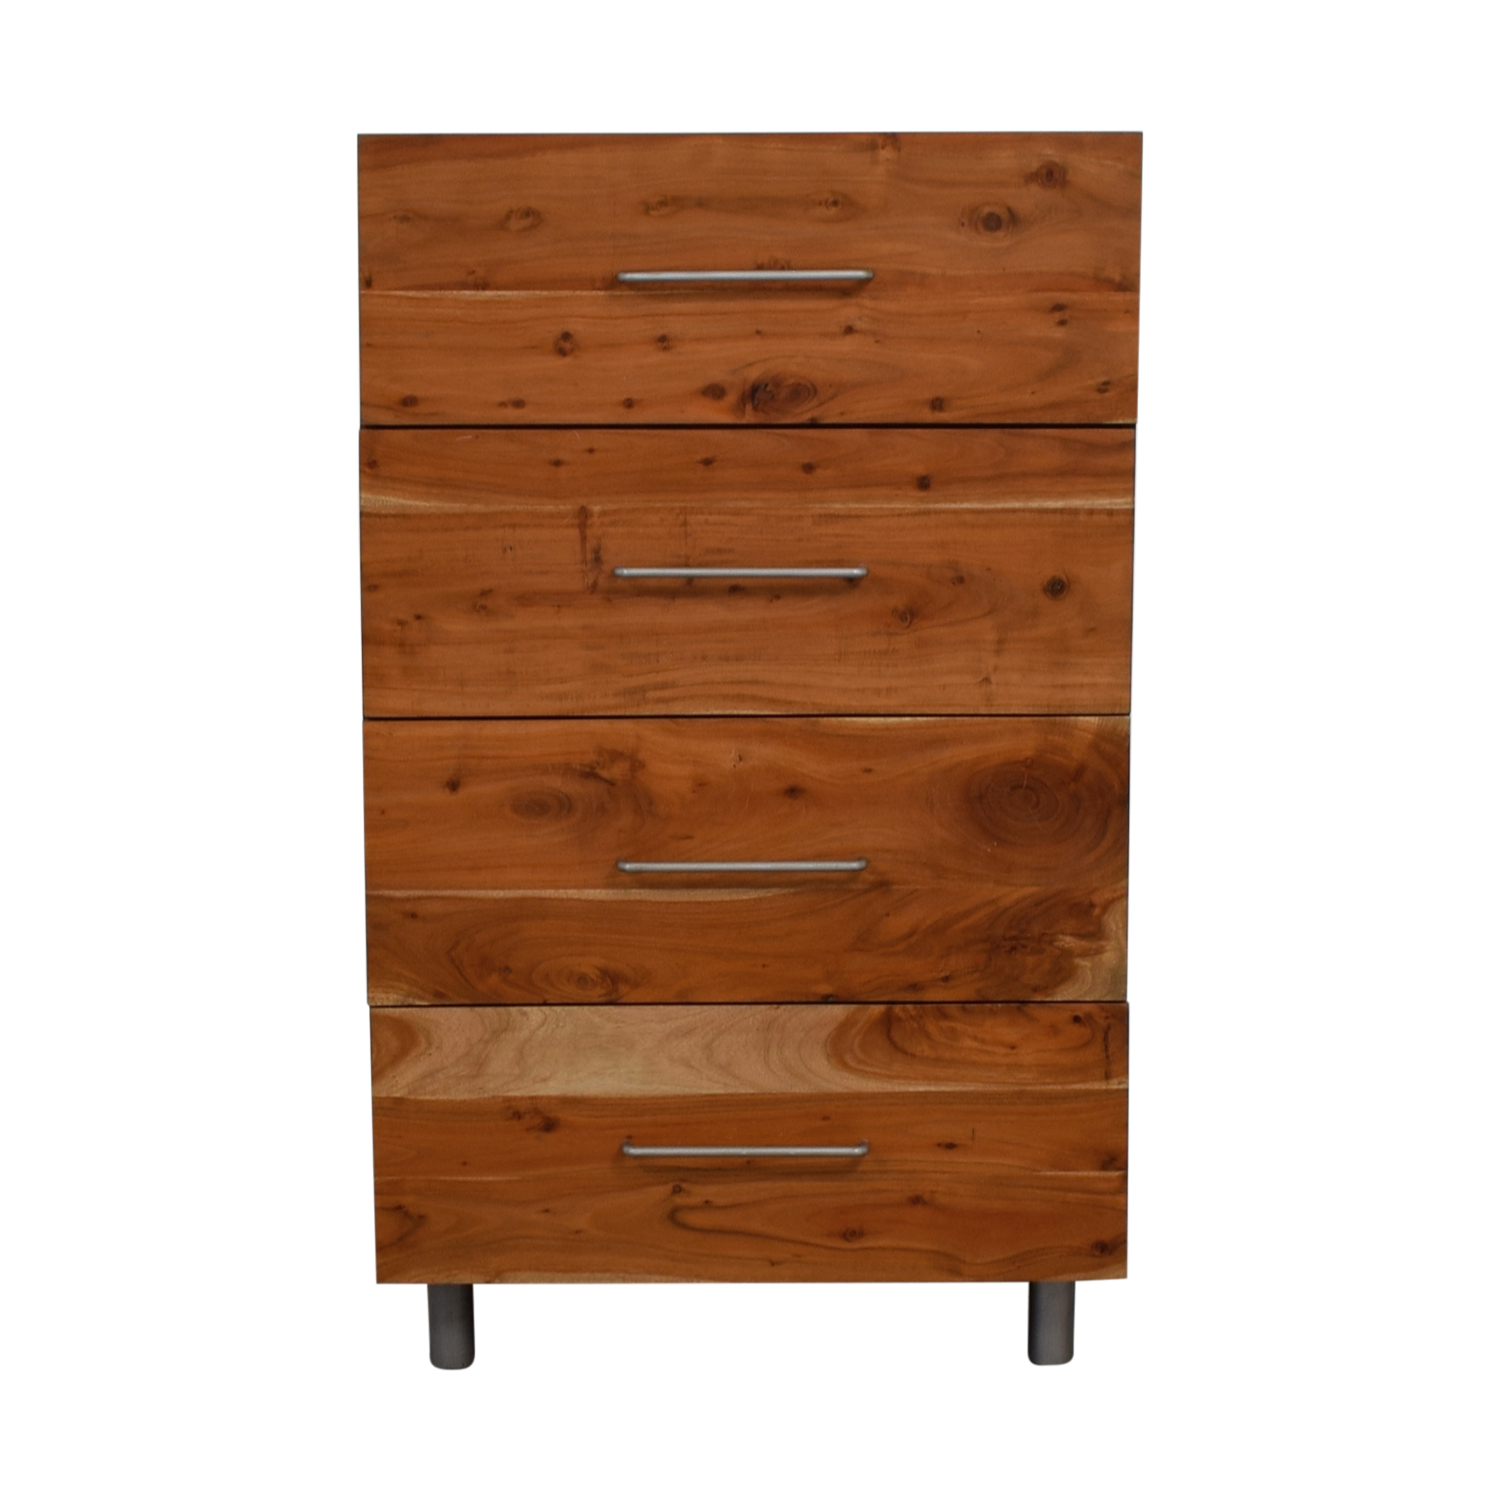 CB2 CB2 Junction Rustic Four-Drawer Tall Chest used